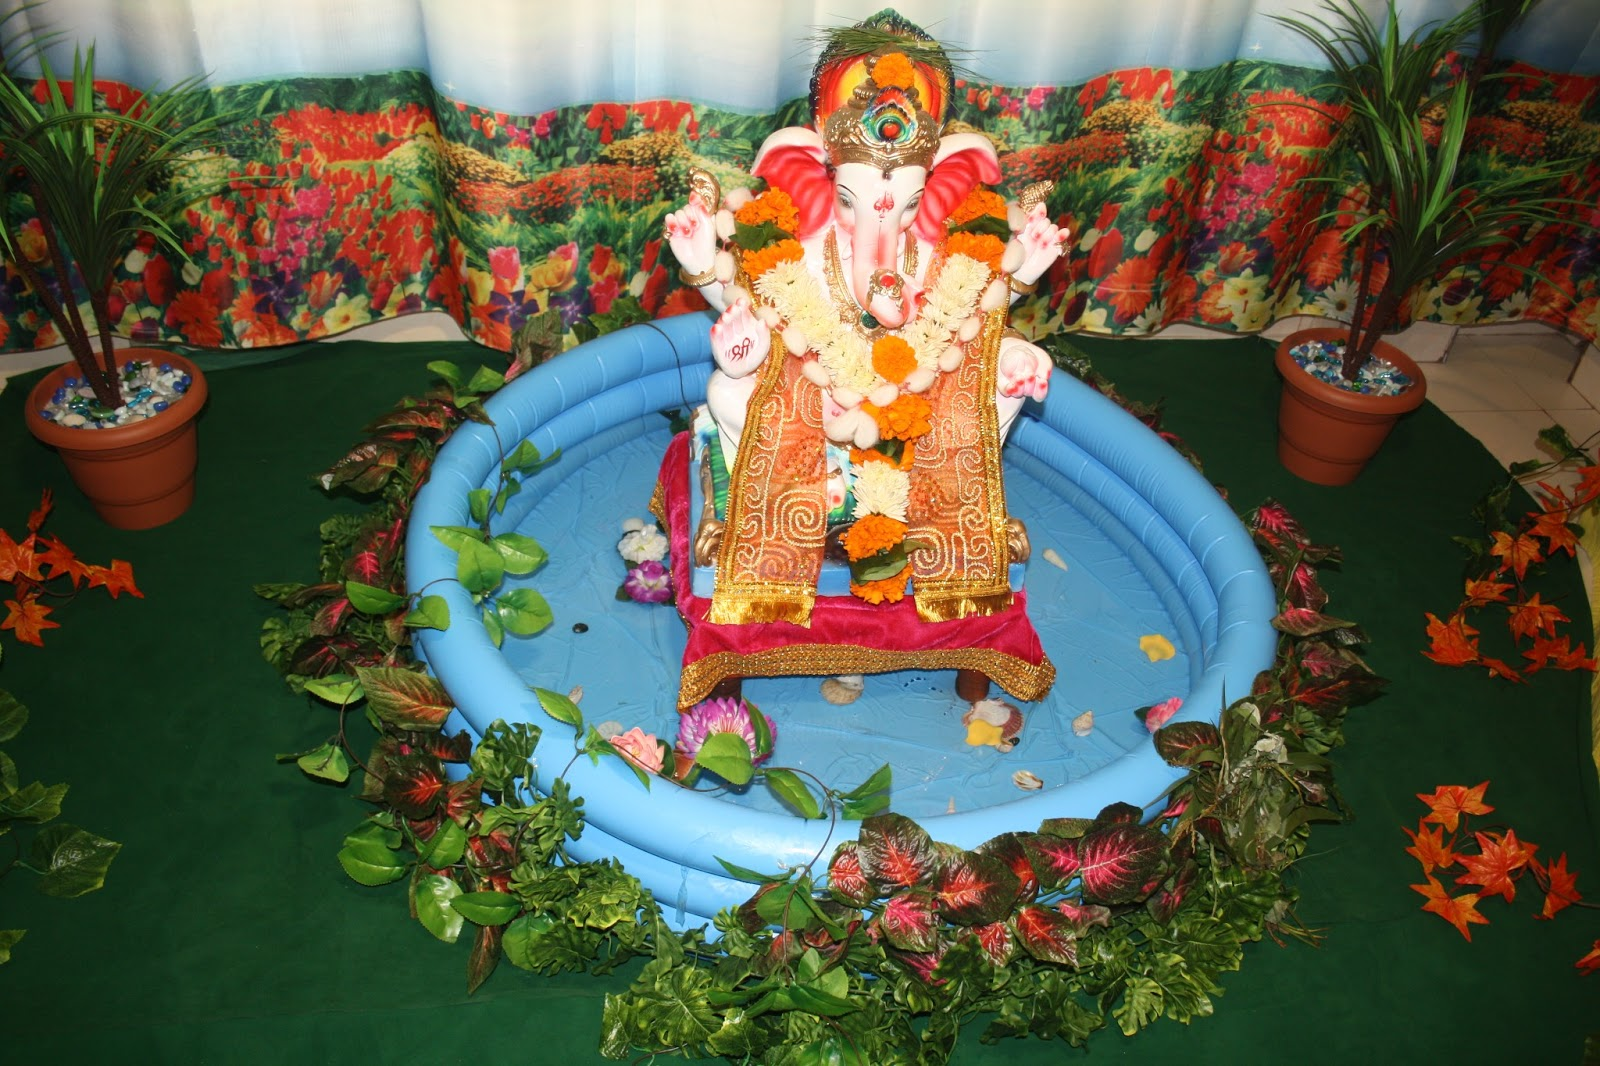 Festival dhamaal march 2013 for Artificial flower decoration for ganpati